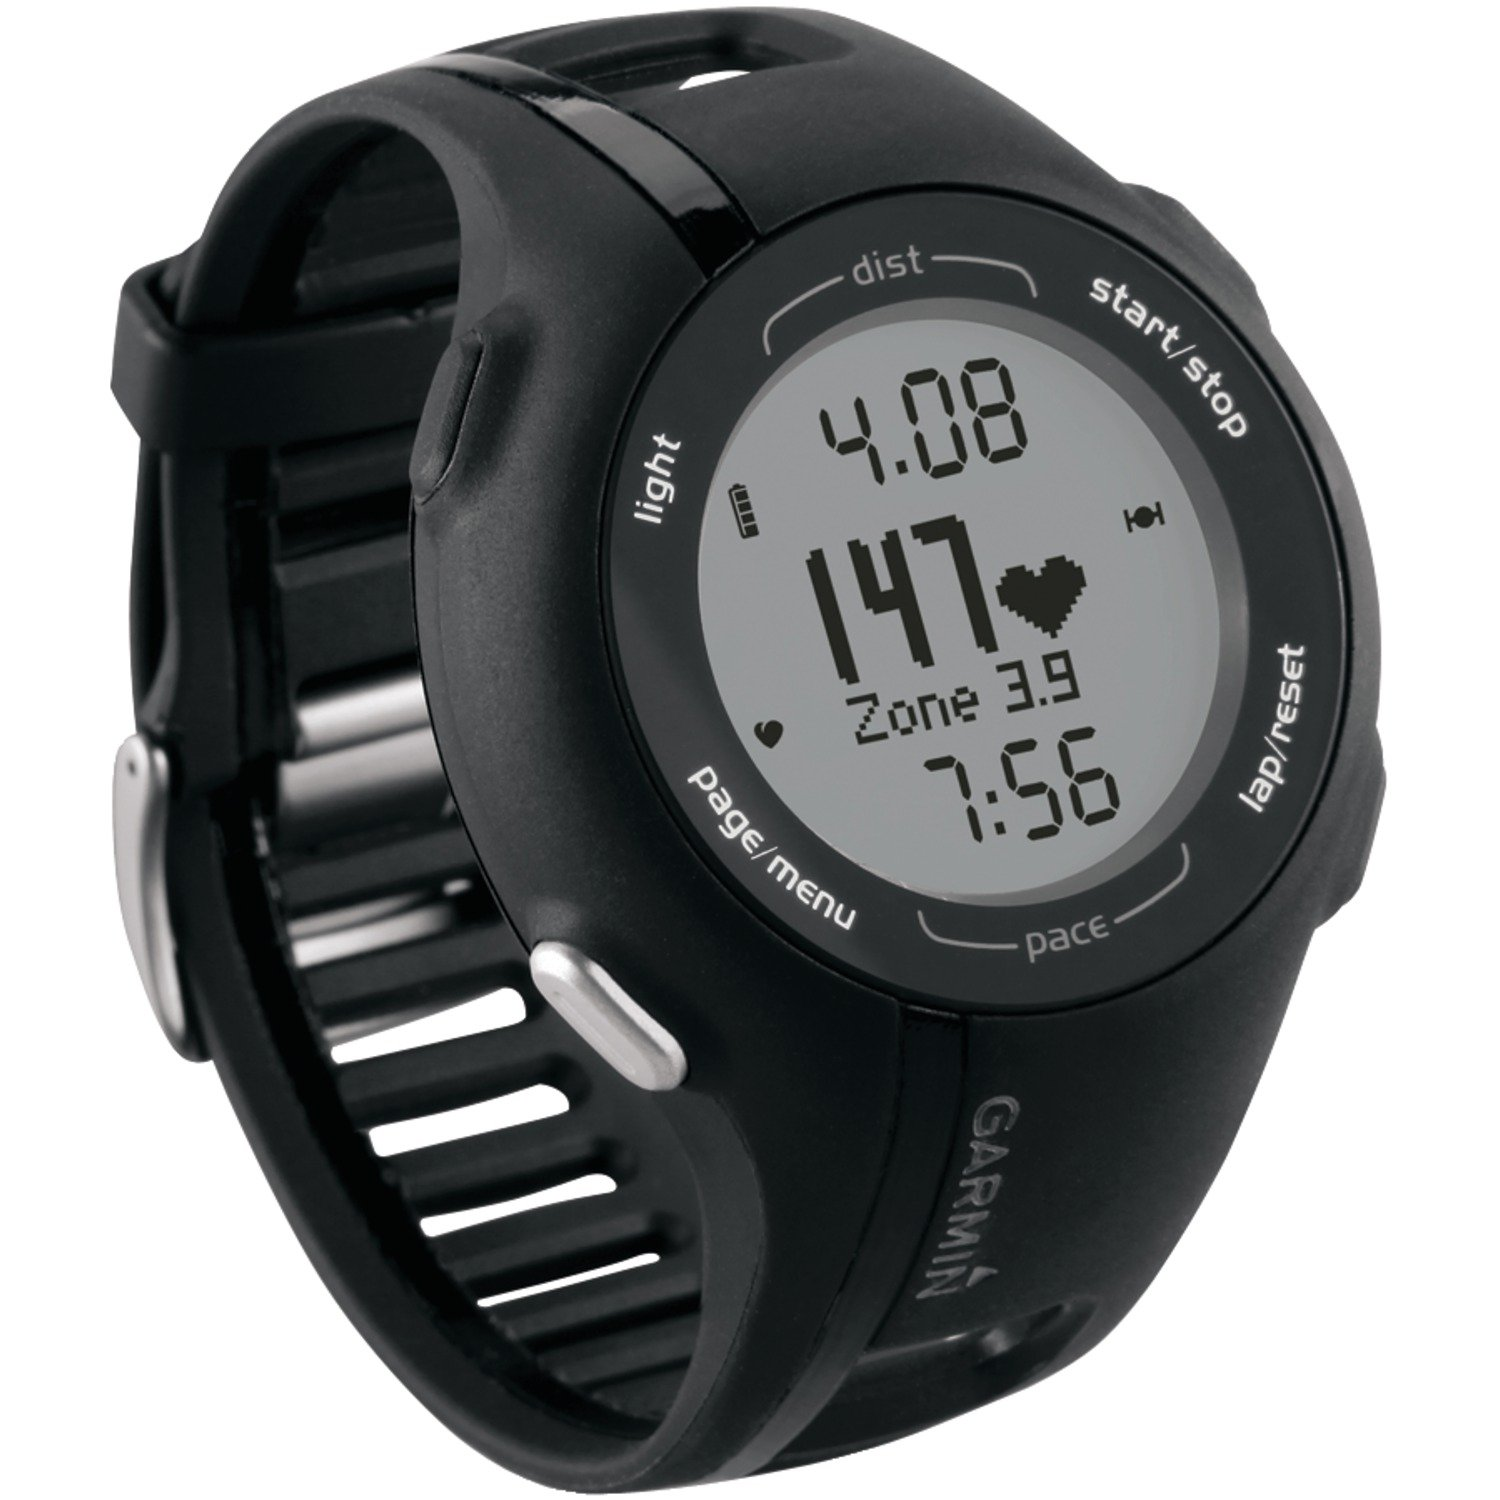 Garmin Forerunner 210 GPS-Enabled Sport Watch with Heart Rate Monitor